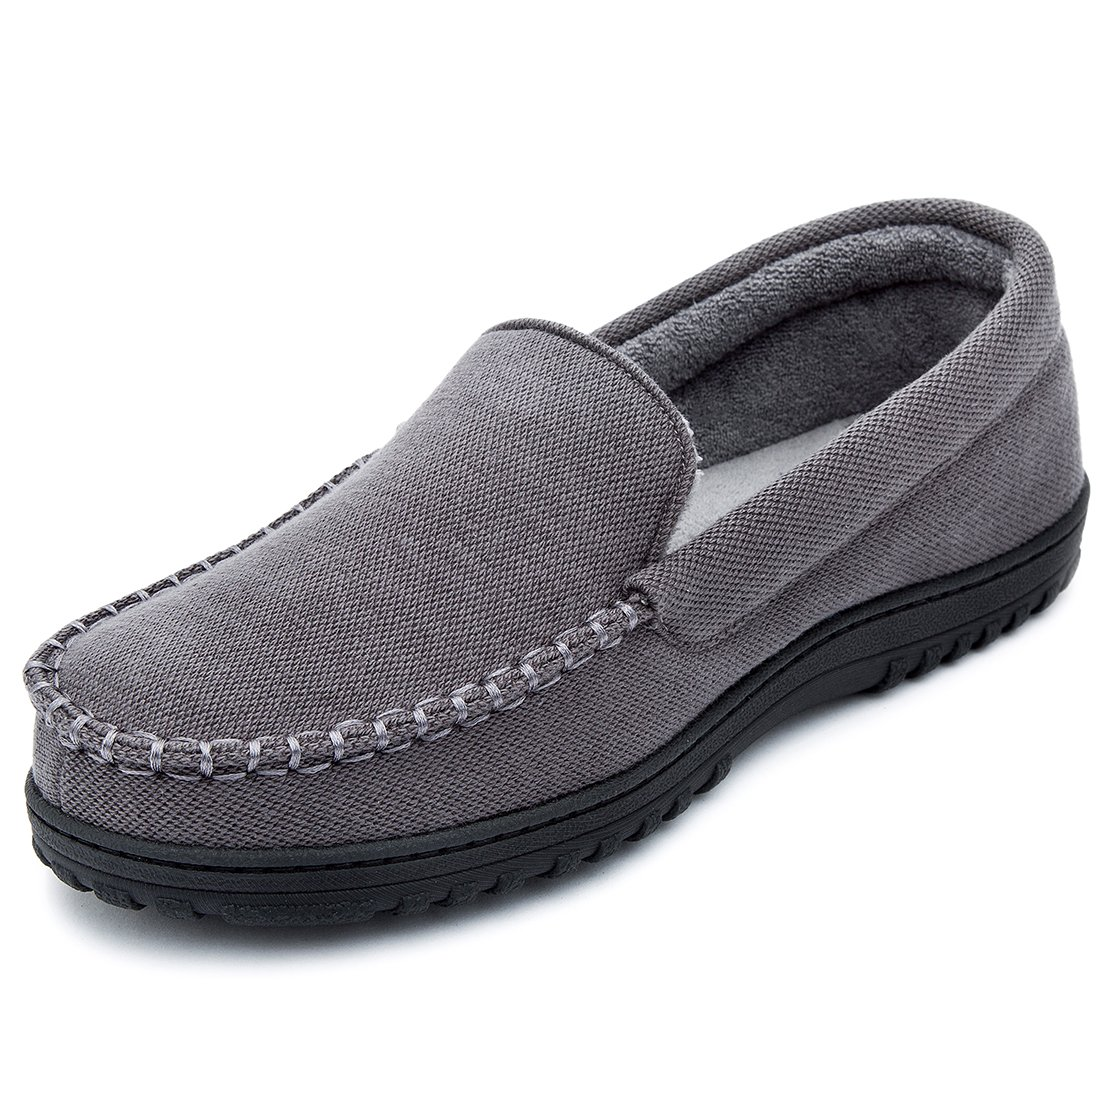 00c577fa10c Cozy Niche Men s Moccasin Slippers